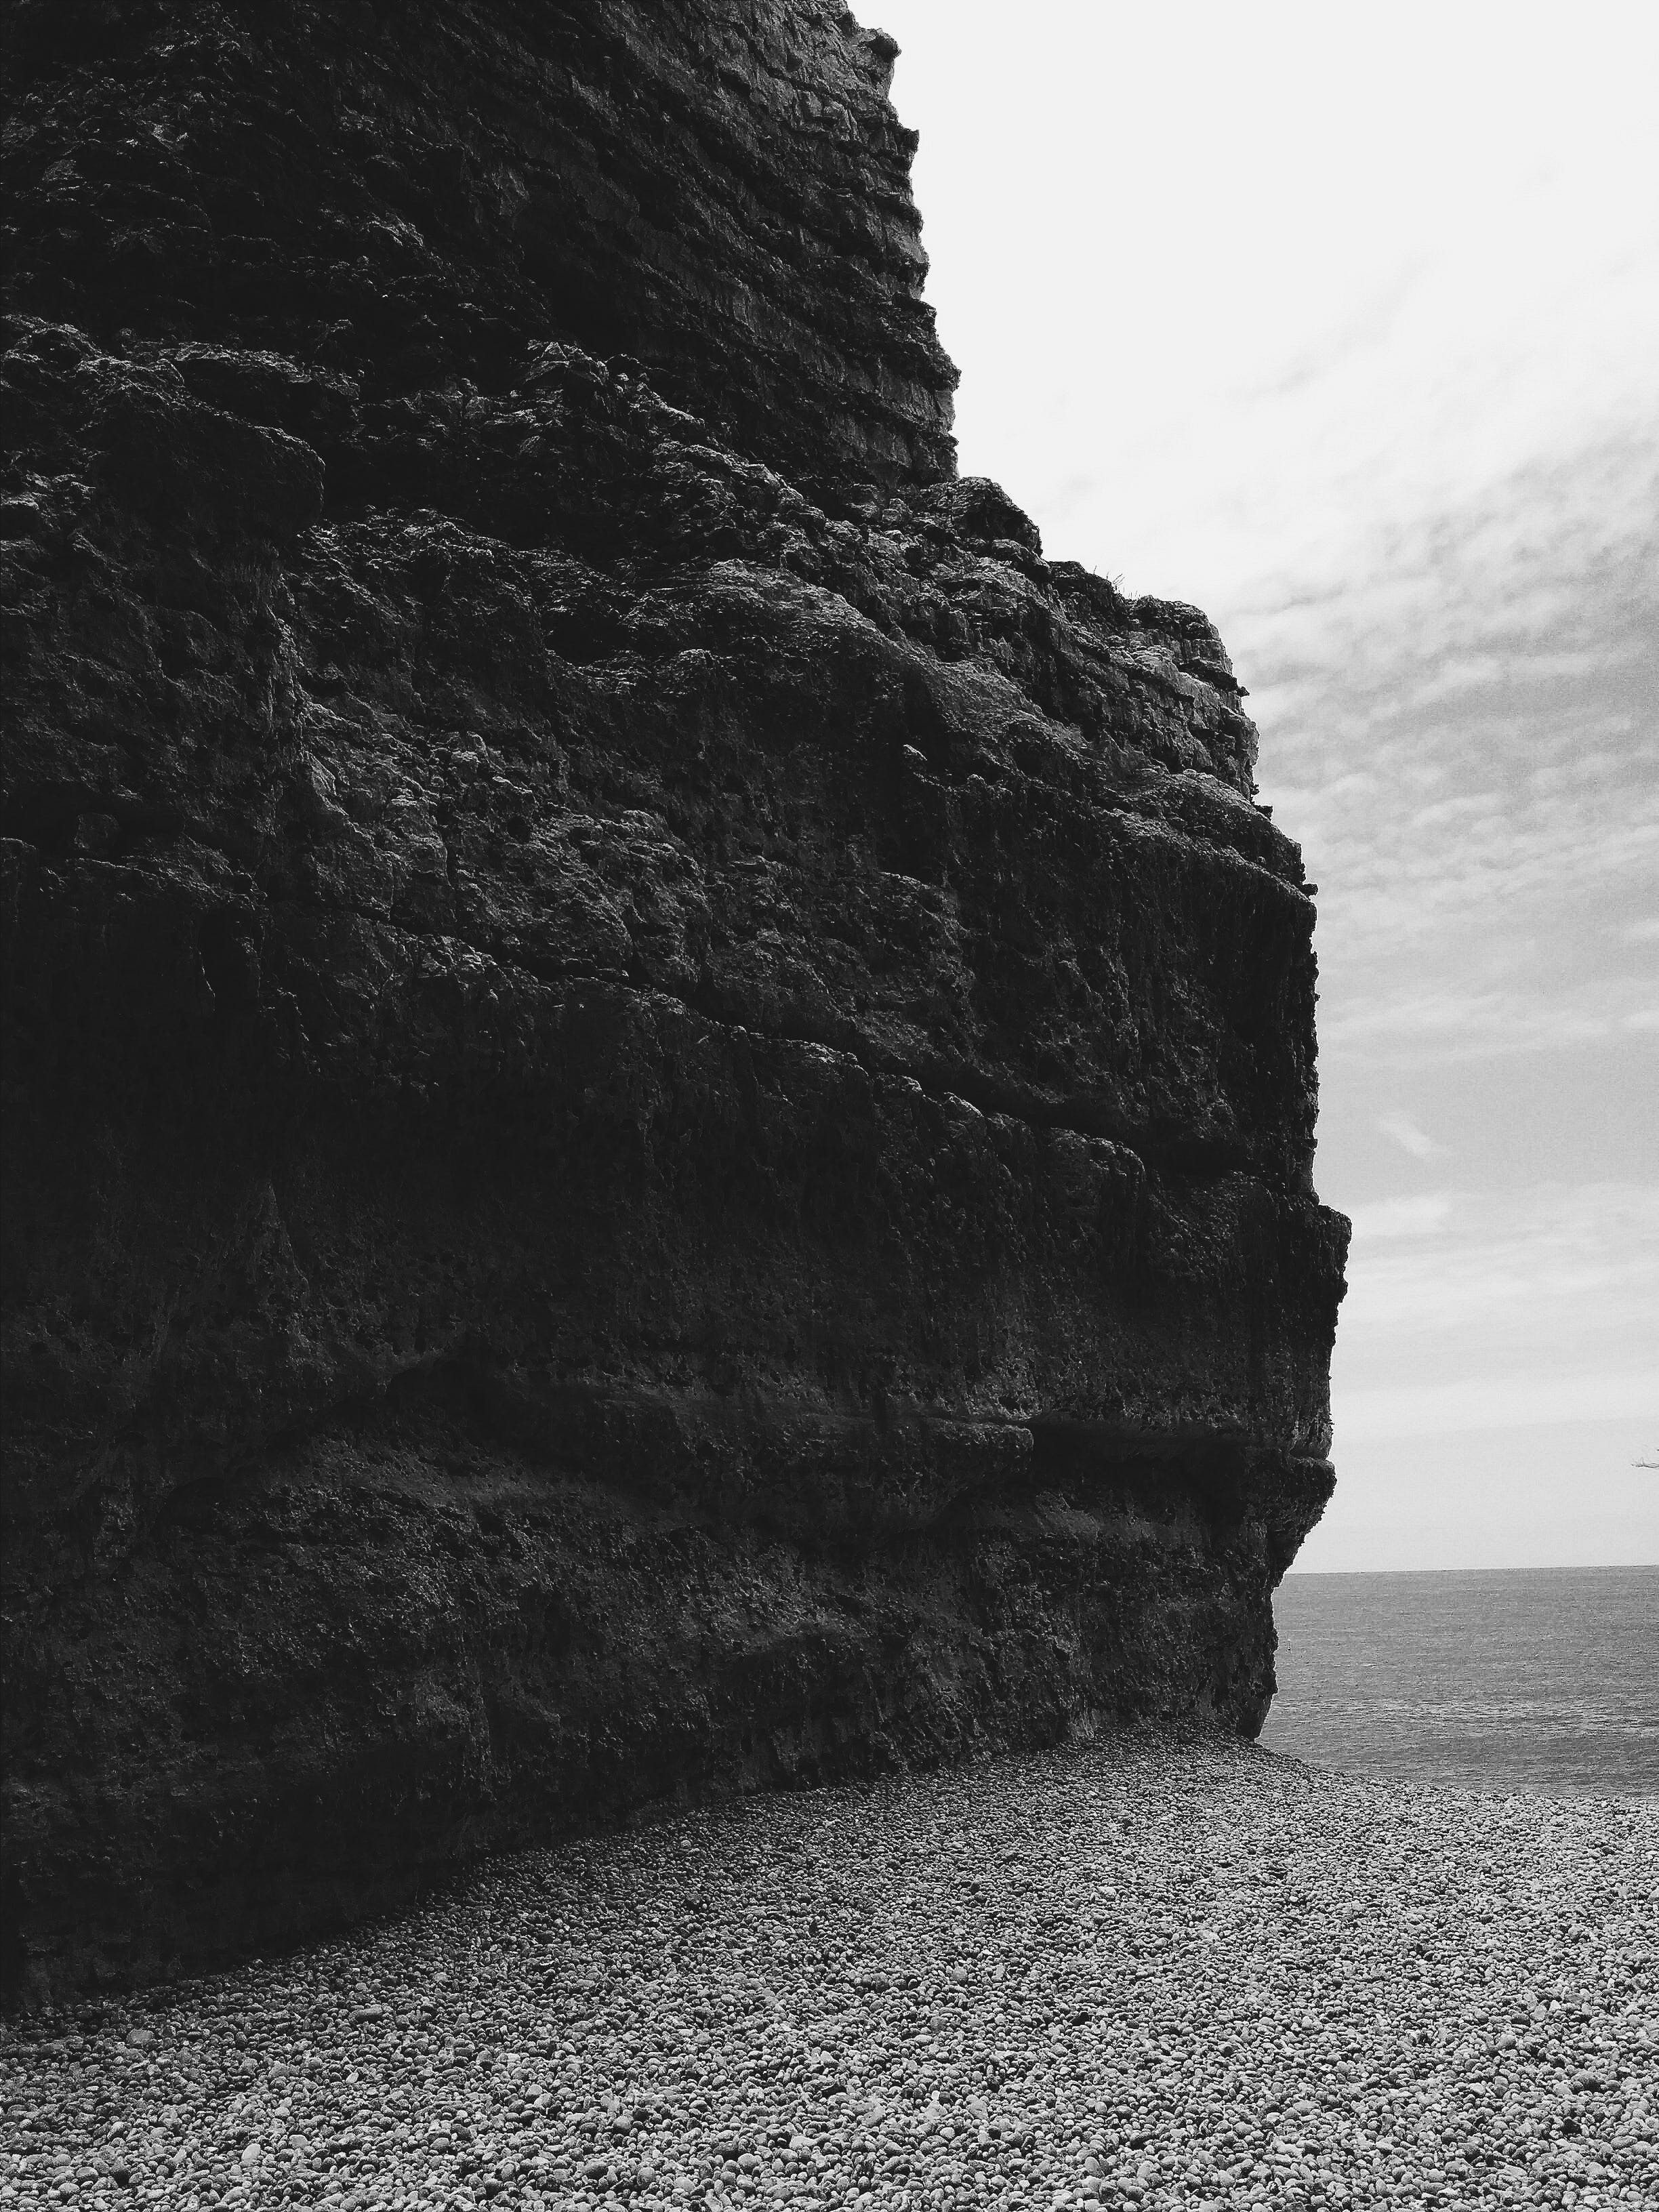 Free stock photo of sea, black-and-white, beach, rocks